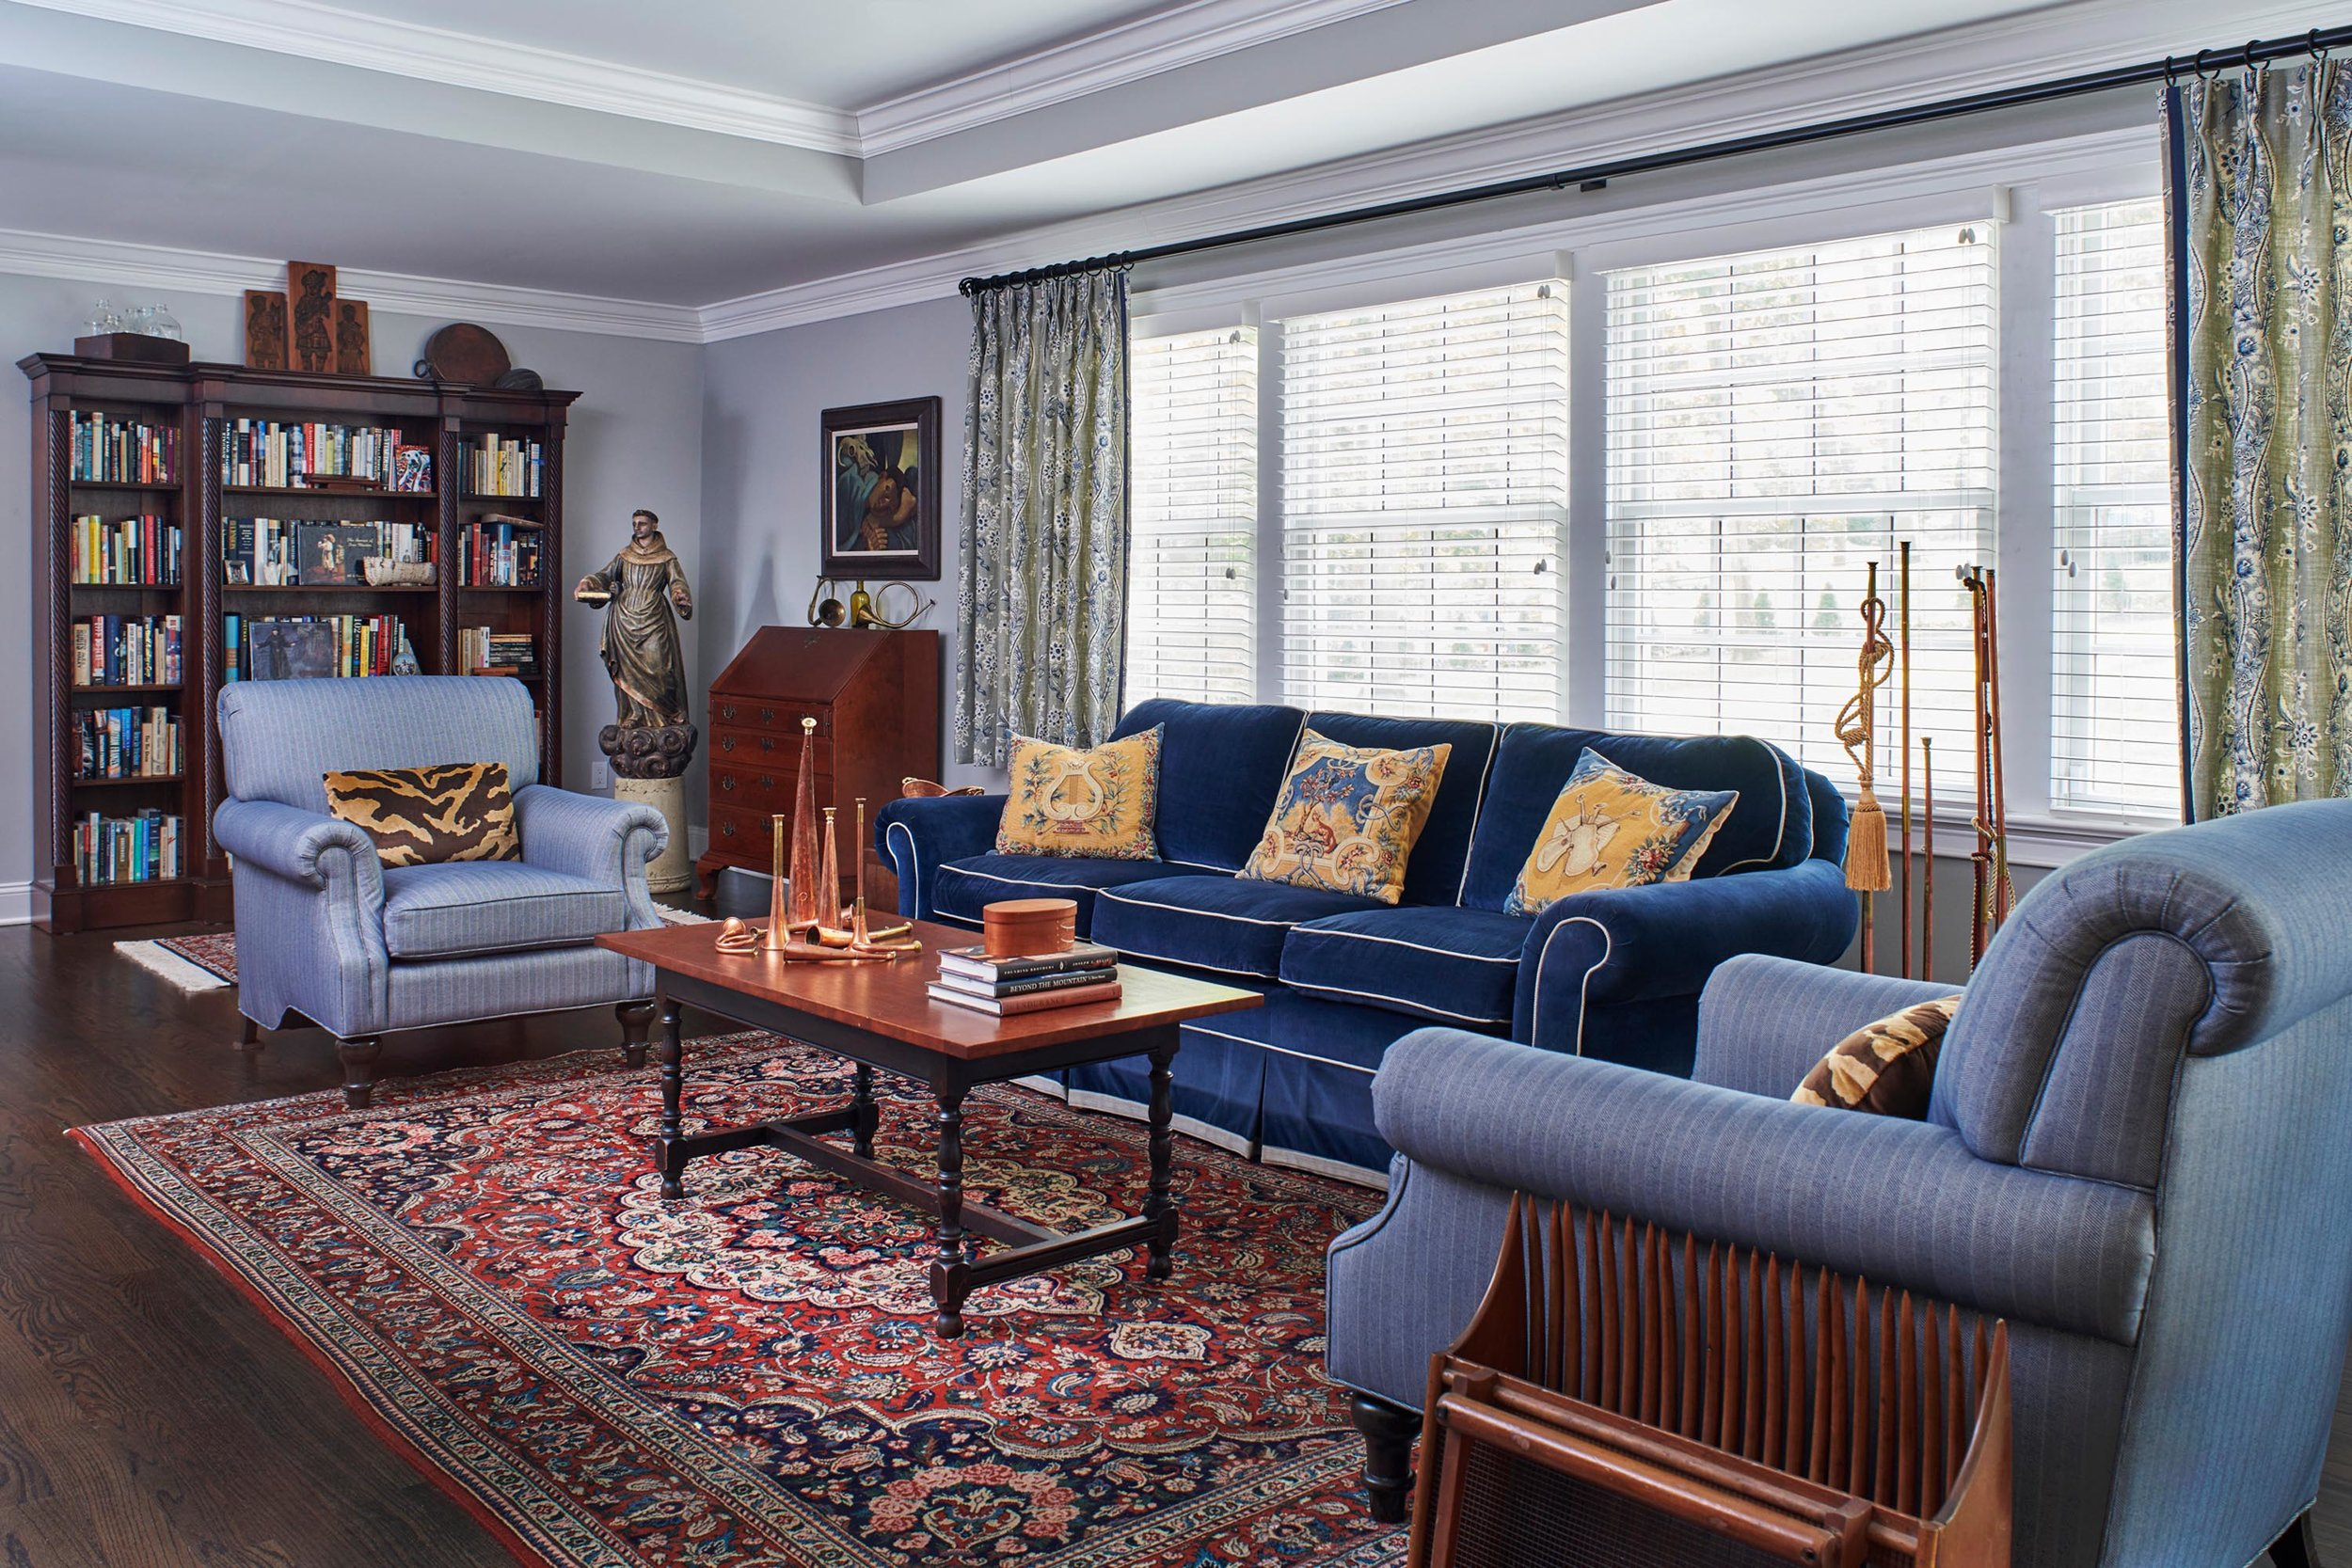 Traditional style living room with blue sofa and ornate rug